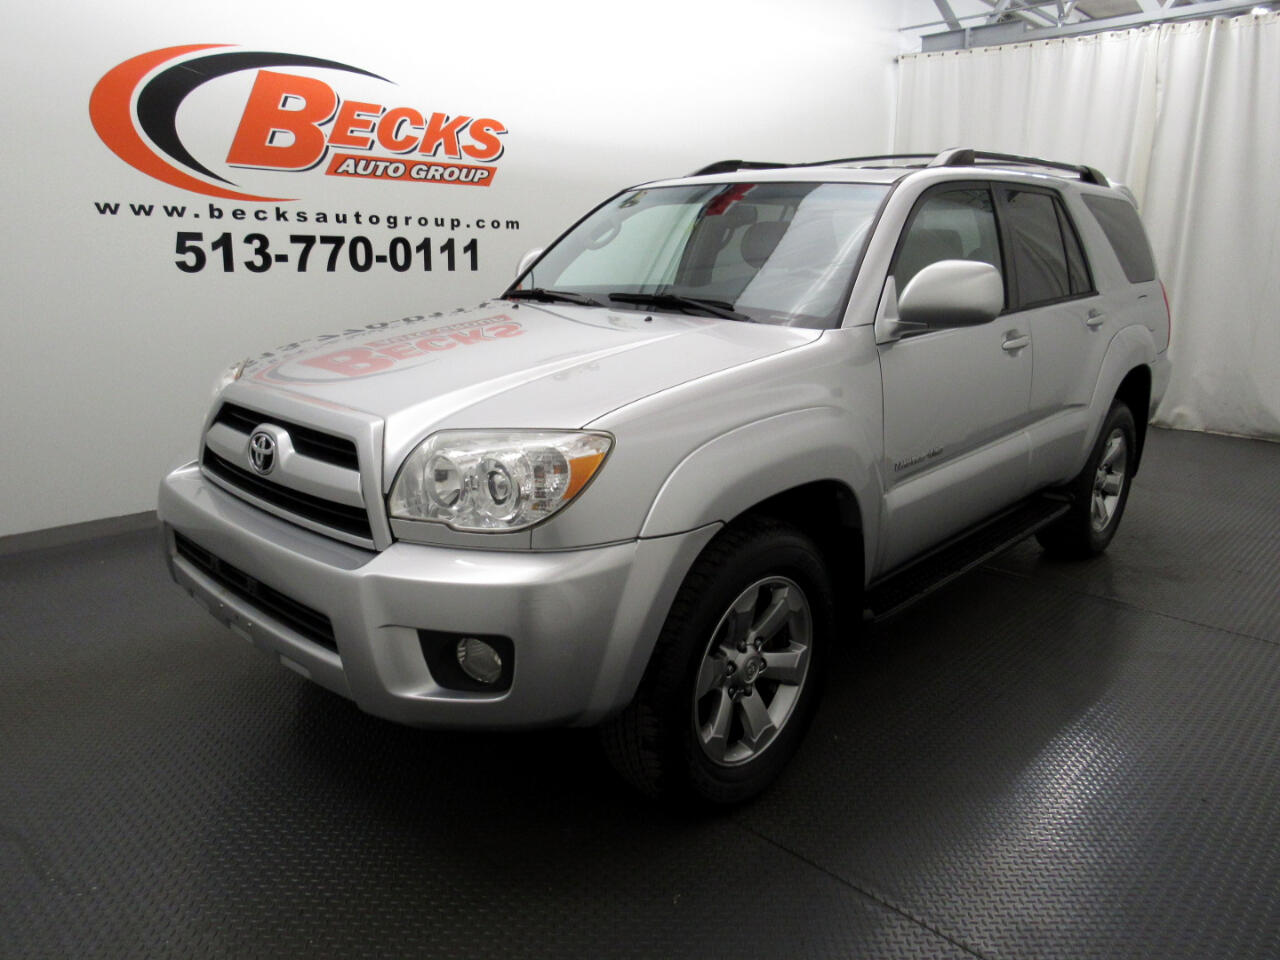 2006 Toyota 4Runner 4dr Limited V6 Auto 4WD (Natl)